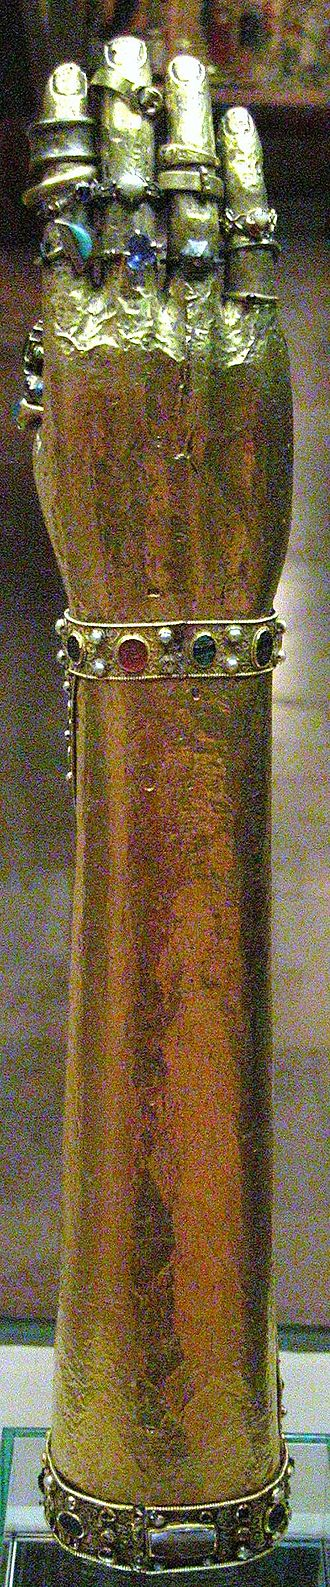 Guelph Treasure - Reliquary of the arm of Saint Blaise (Herzog Anton Ulrich Museum, Dankwarderode Castle)